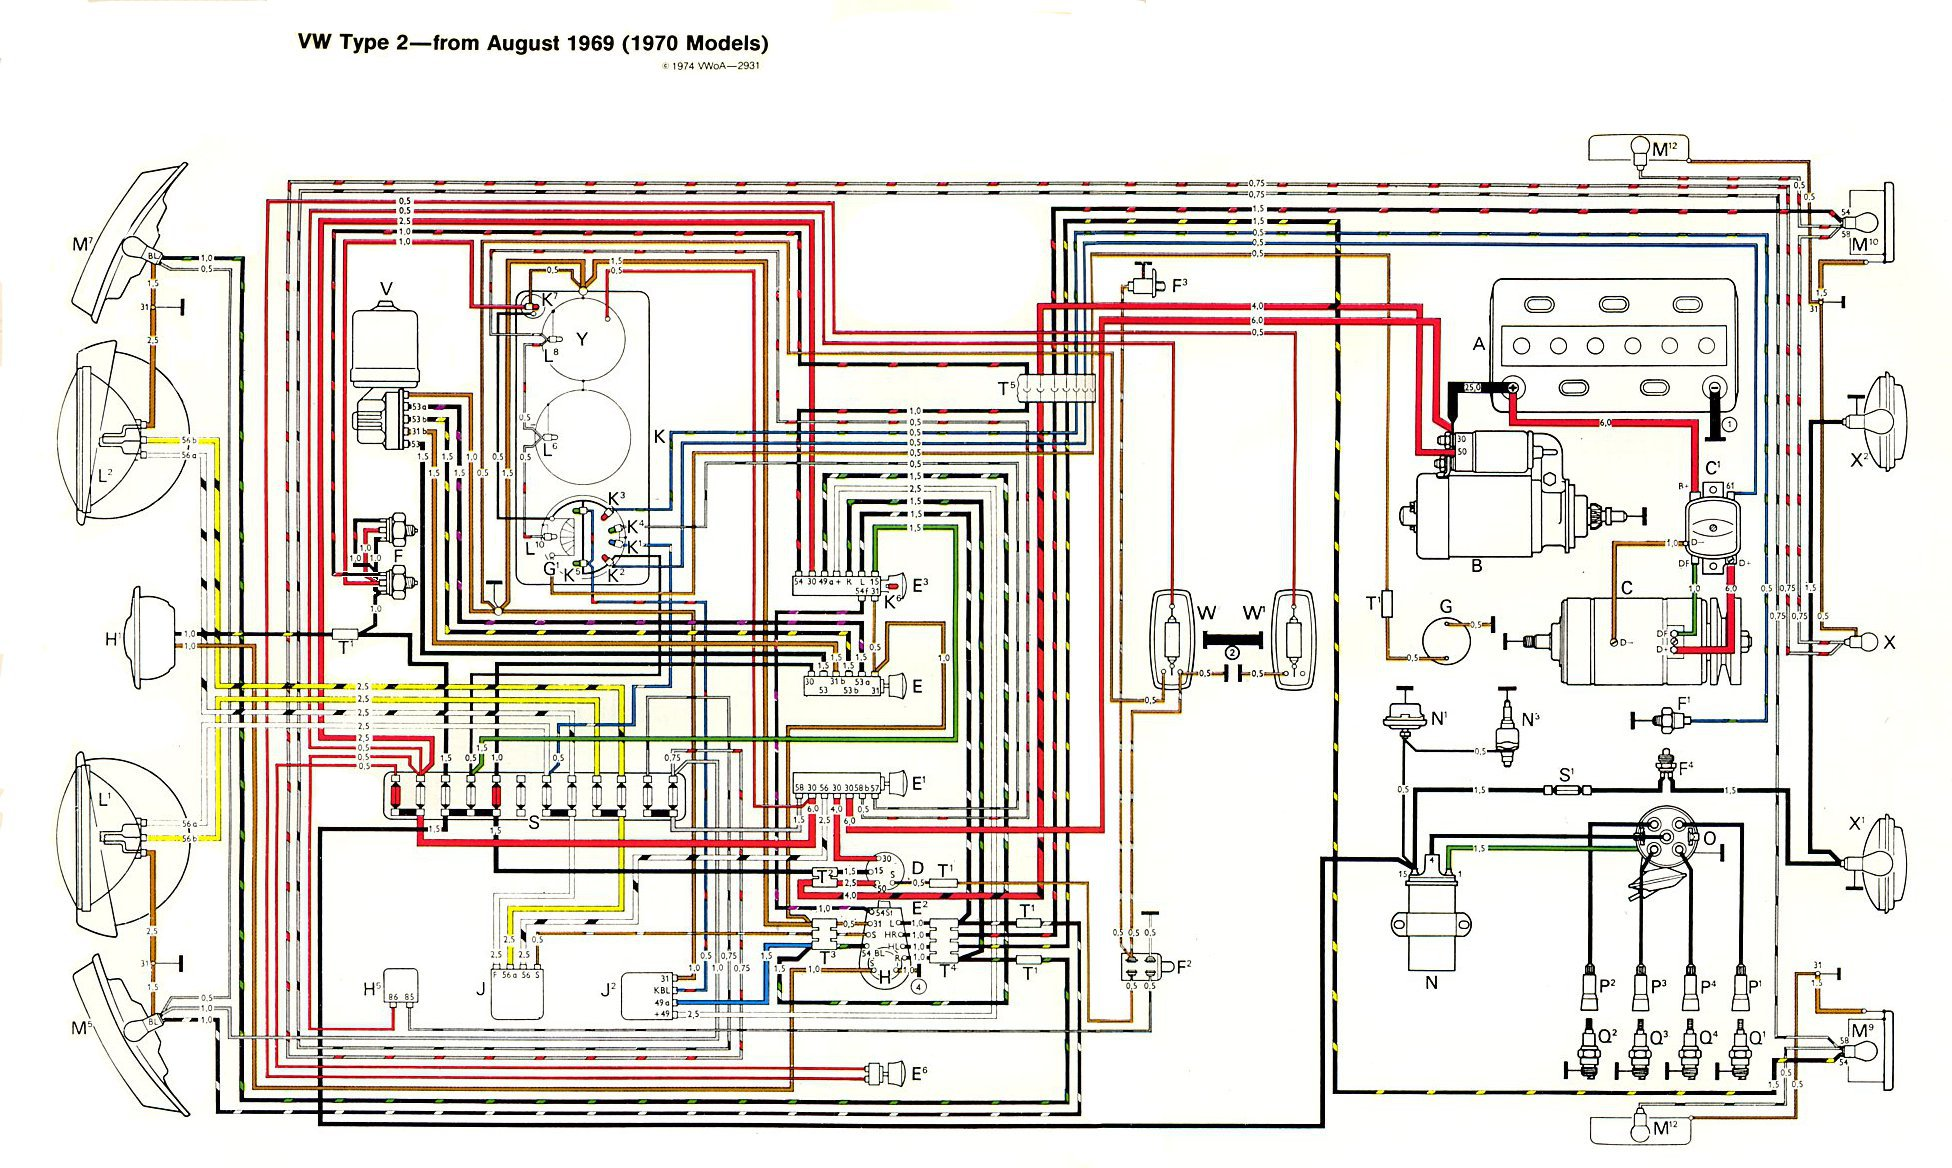 baybus_70 thesamba com type 2 wiring diagrams Wiring Harness Diagram at gsmx.co